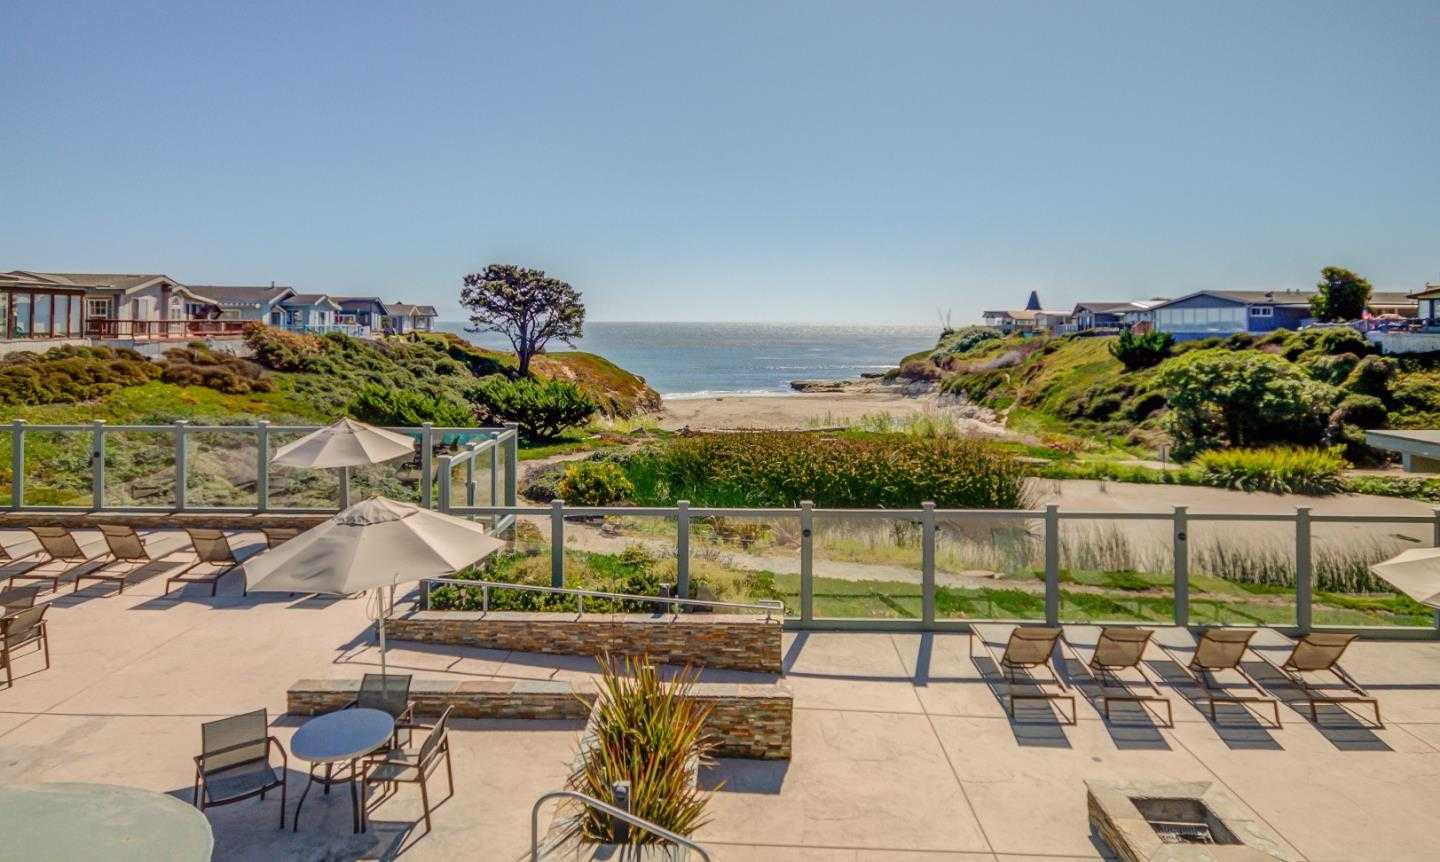 $161,000 - 2Br/2Ba -  for Sale in Santa Cruz